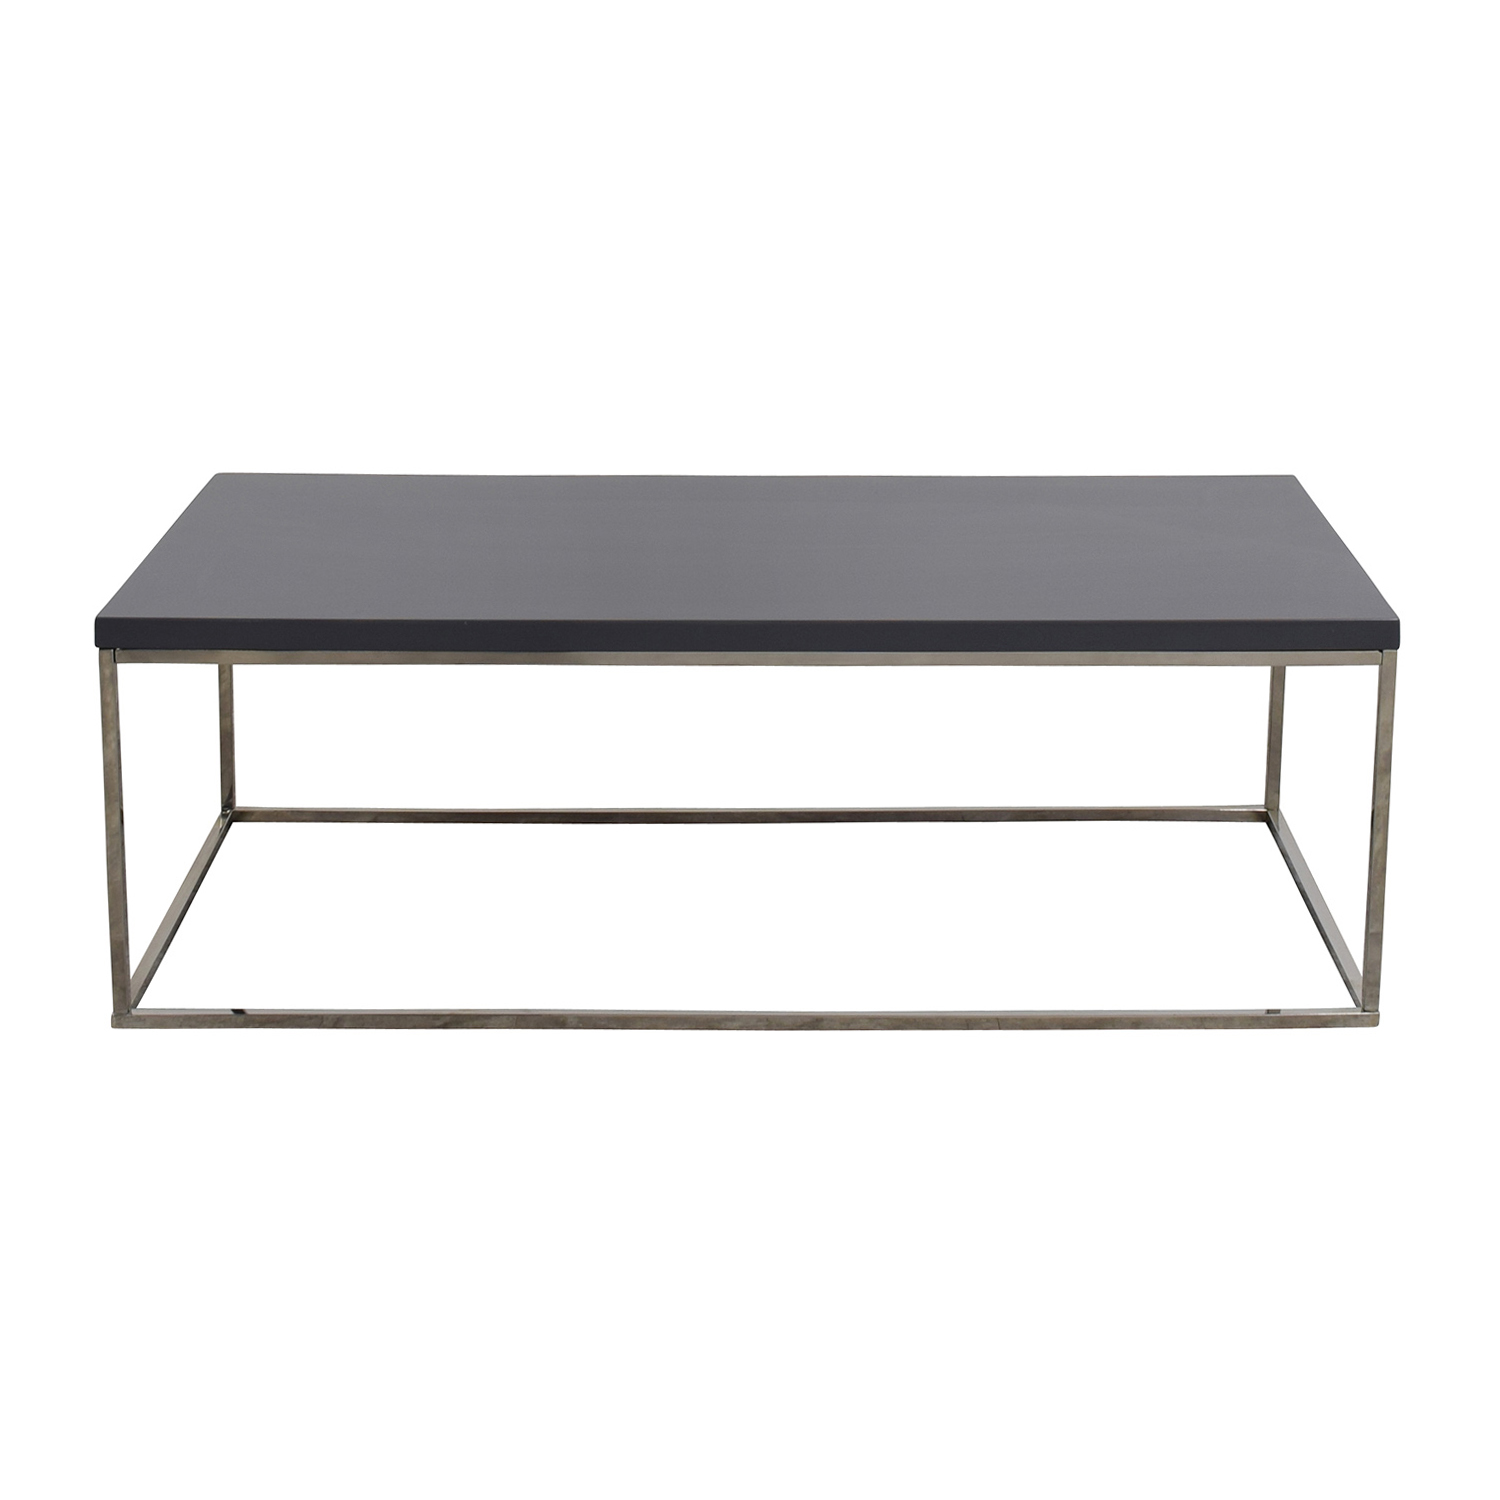 85 off brown wood coffee table with side drawers tables